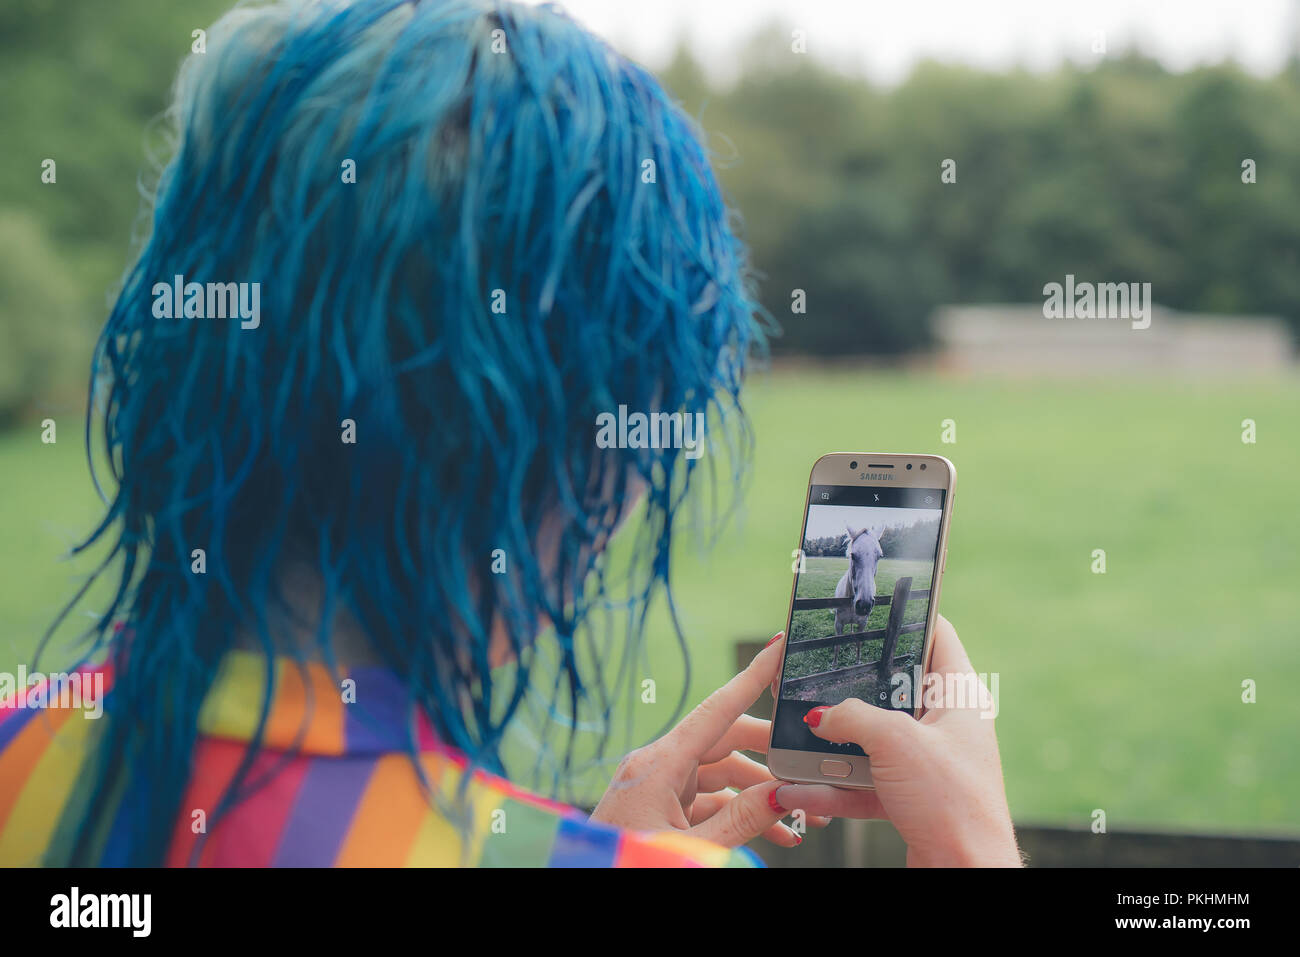 5b59b86c09c6d A blue haired woman, wearing a gay pride like top, takes a picture of